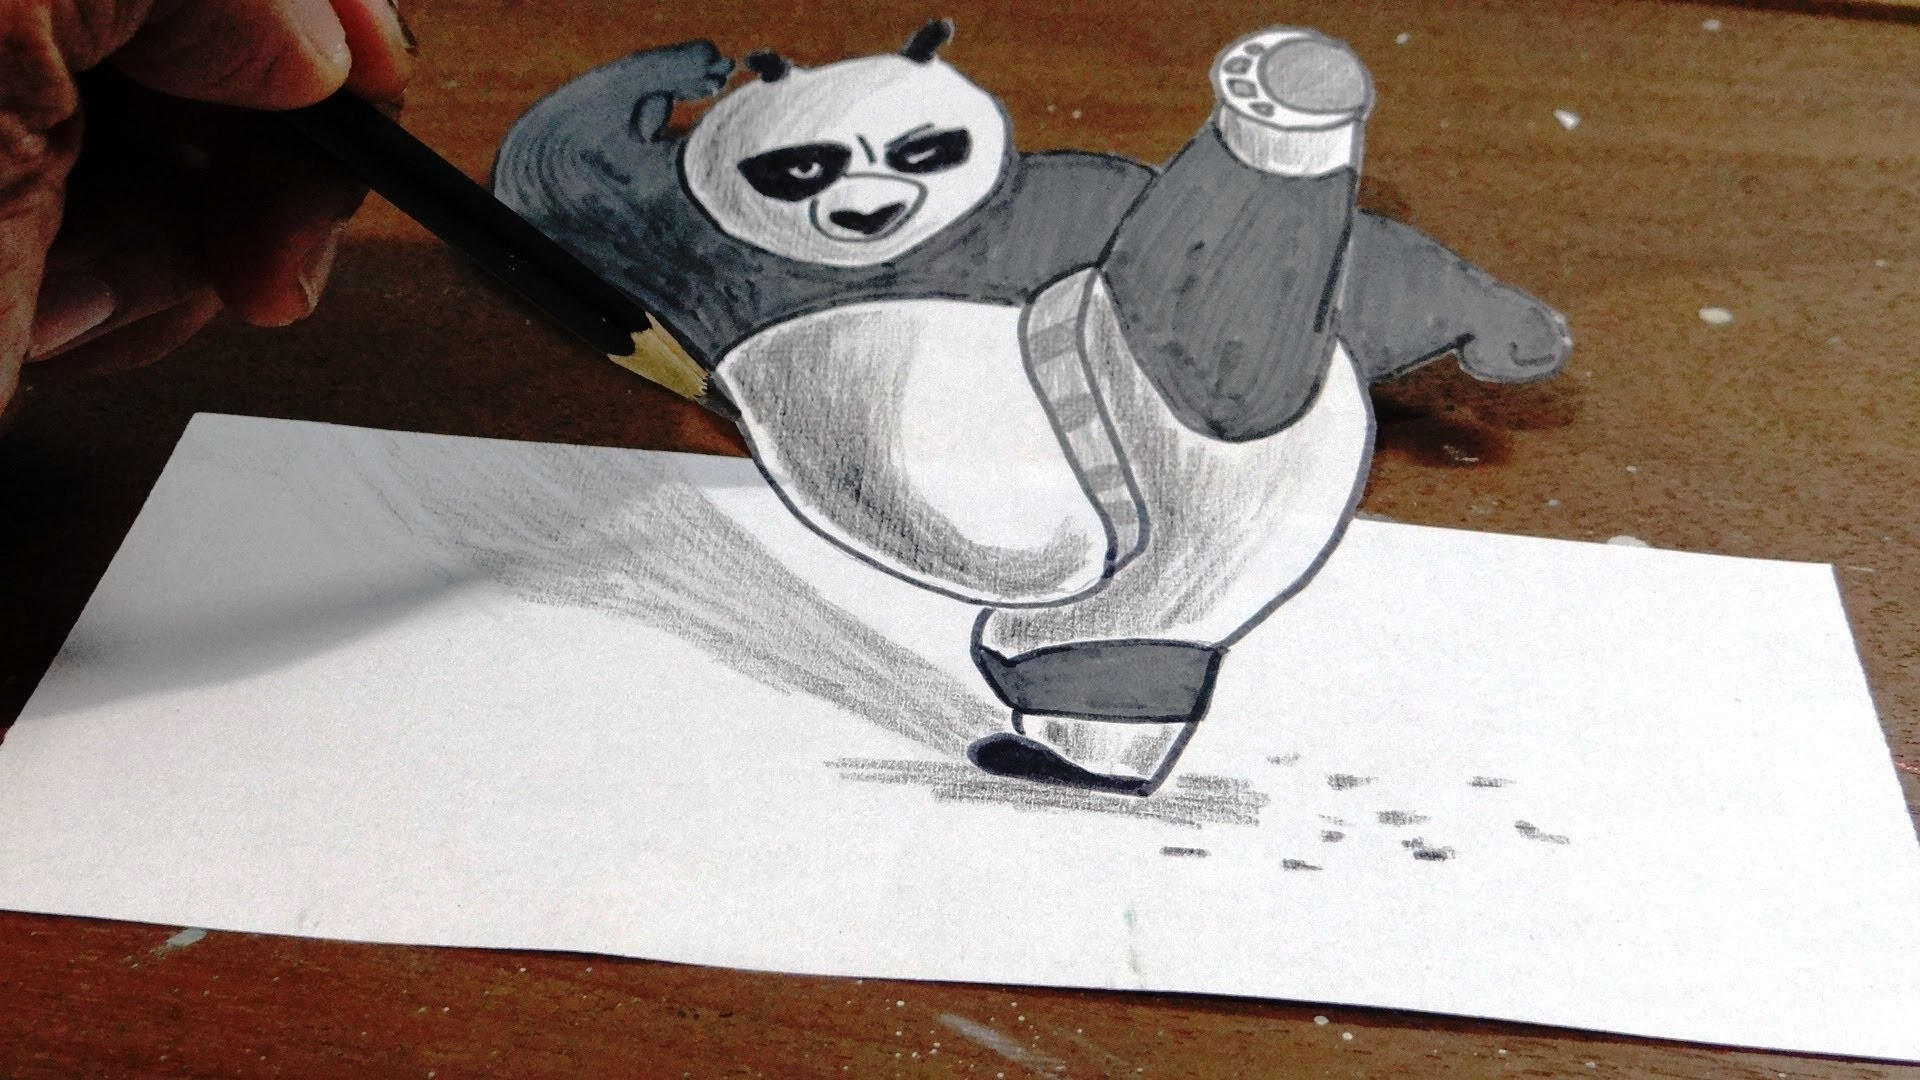 How to draw kung fu panda in 3d step by step with narration